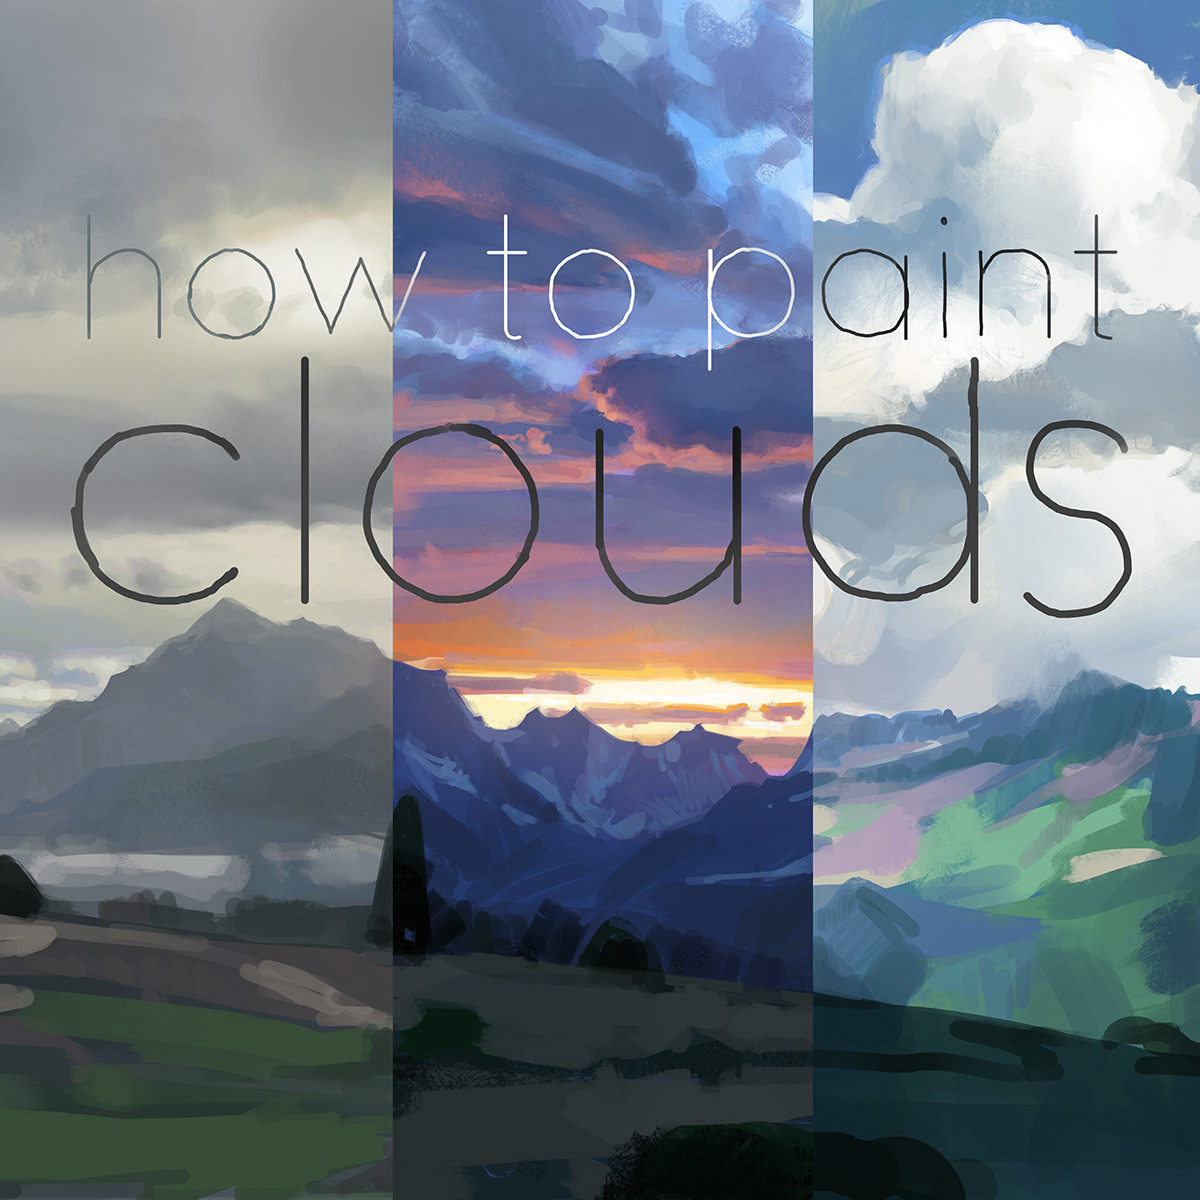 John wallin liberto paintclouds icon